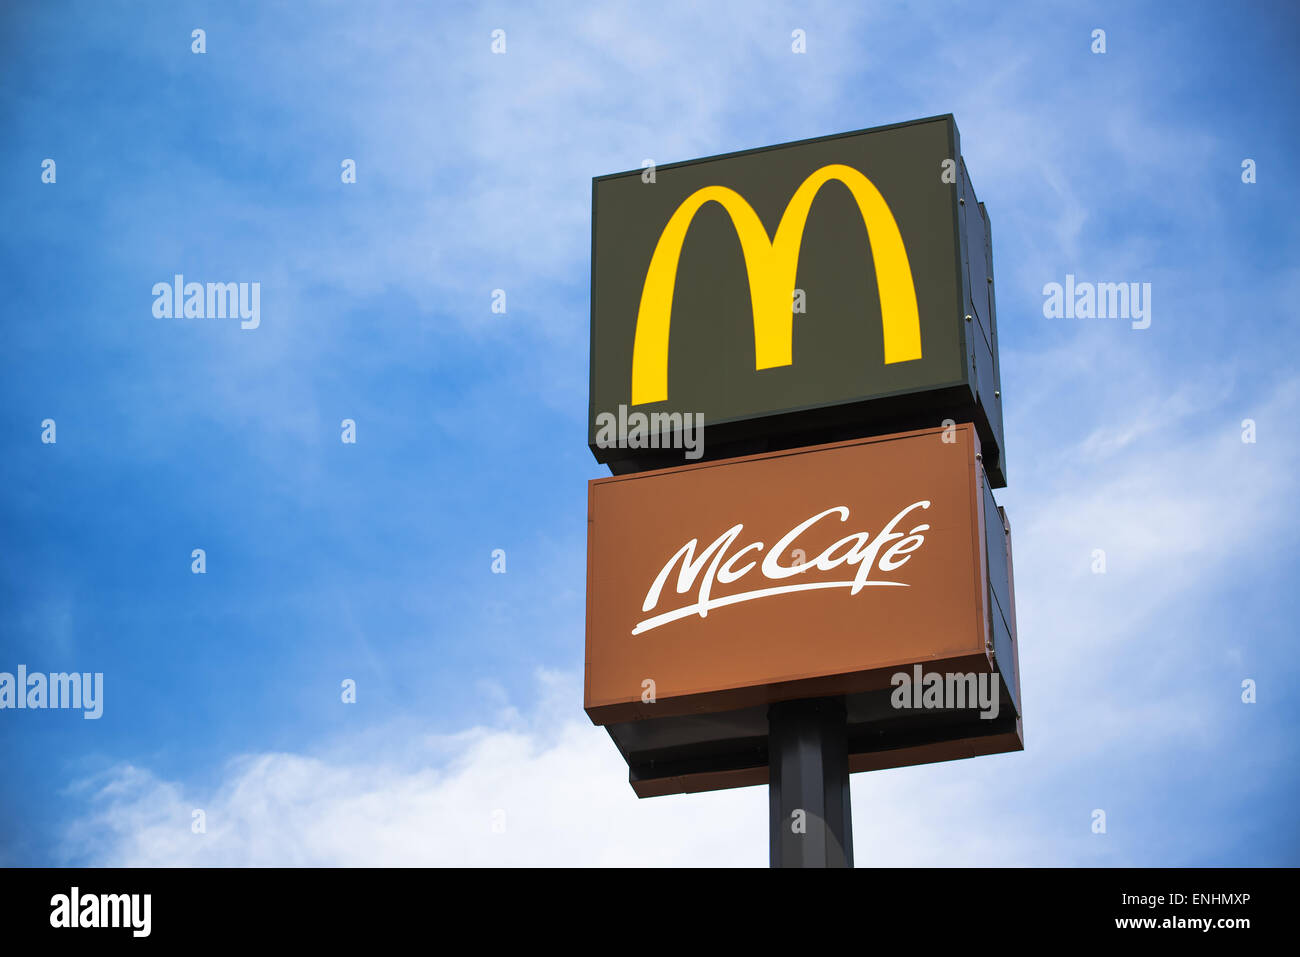 NOVI SAD, SERBIA - MAY 5, 2015: McDonalds and McCafe Signs on Post to mark fast food restaurant. Illustartive editorial - Stock Image